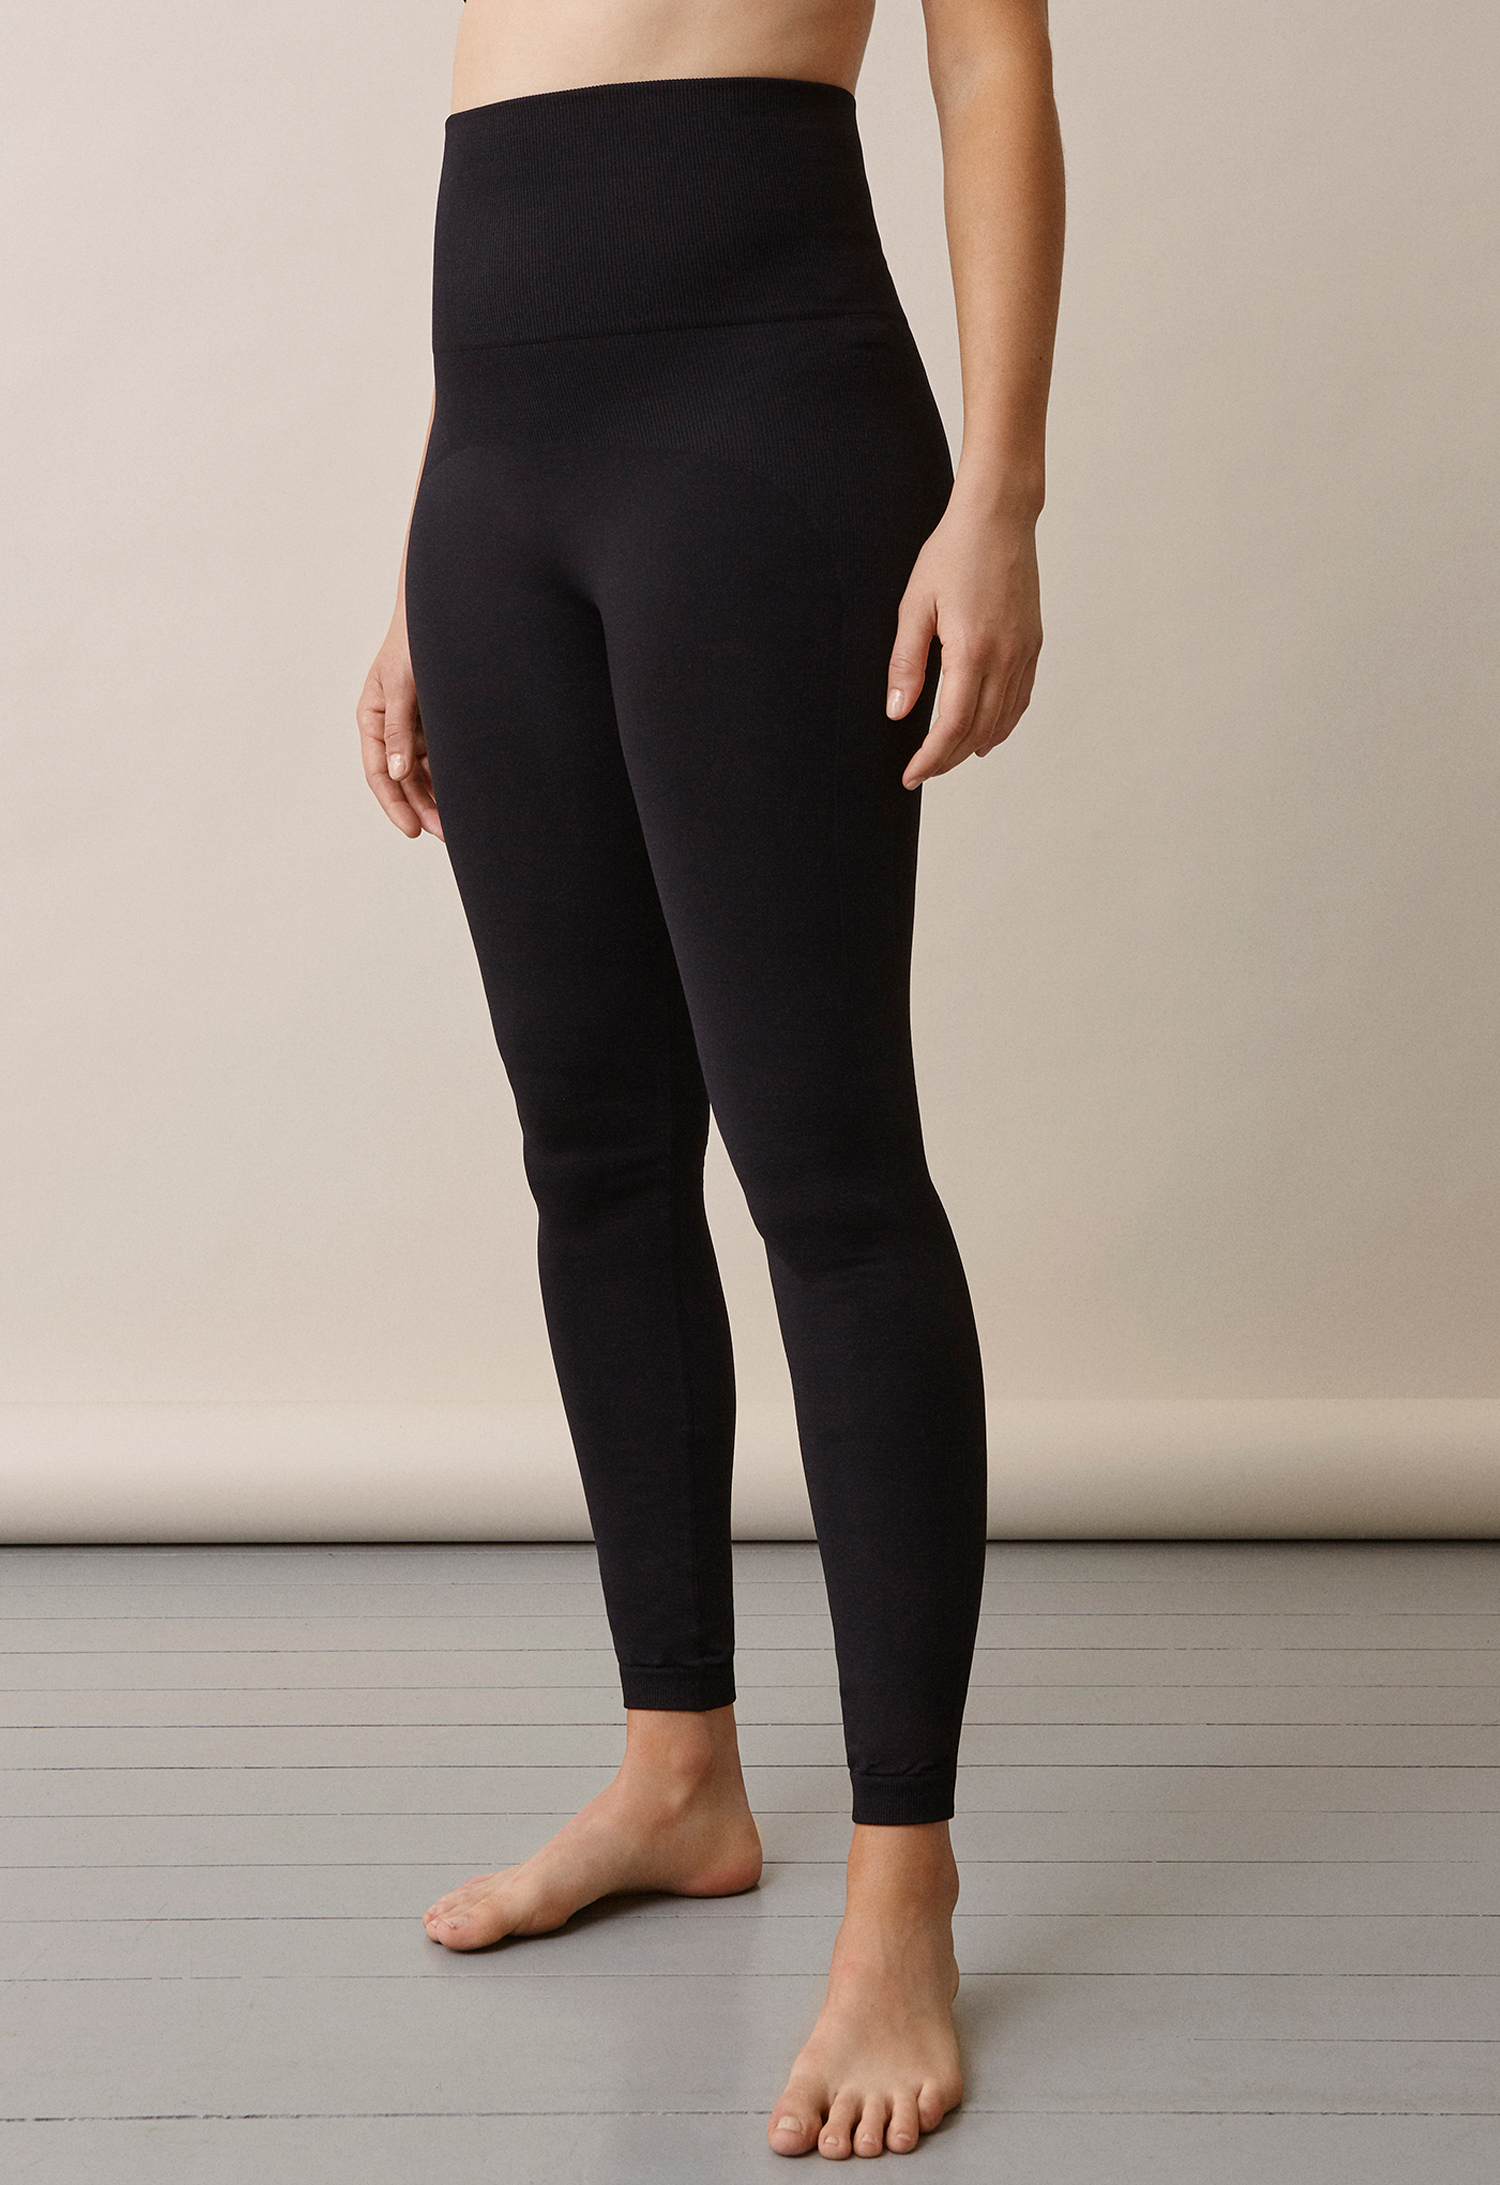 Soft Support Sports Leggings